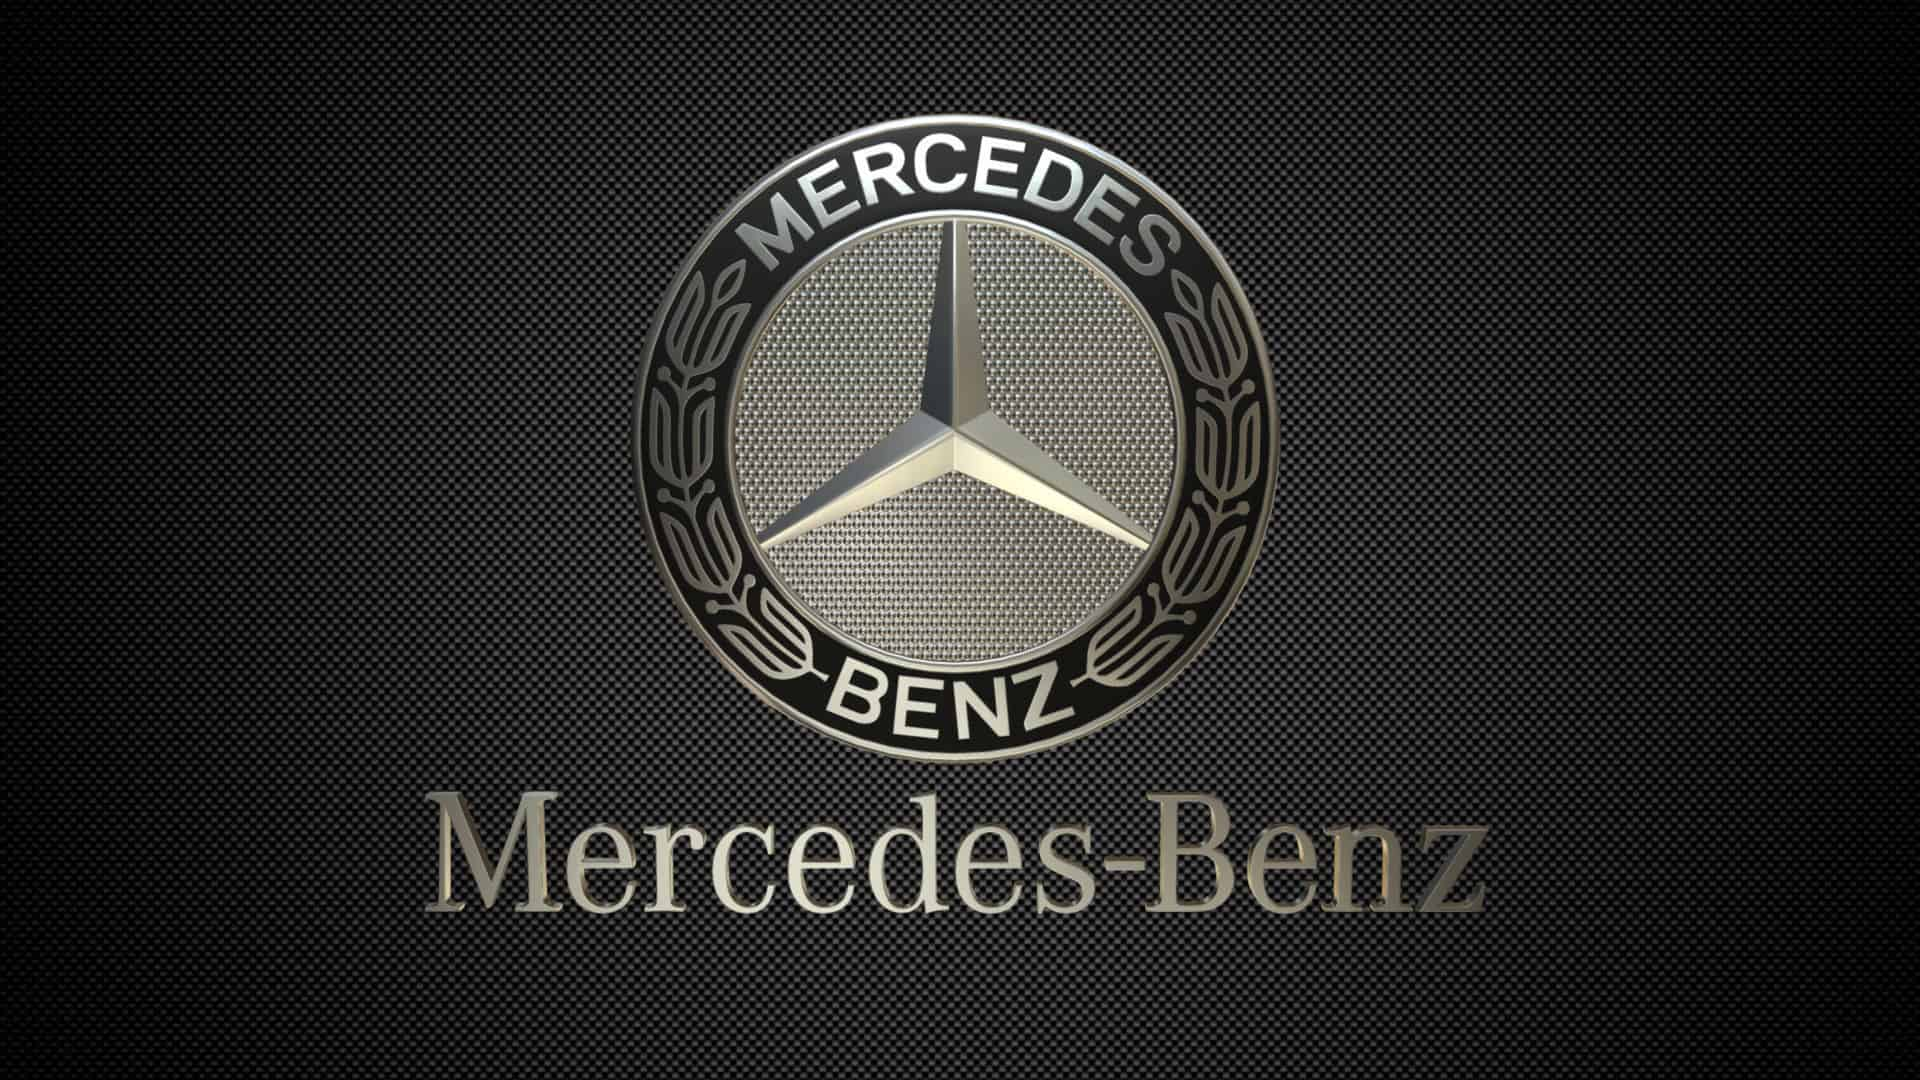 Mercedes-Benz Brand History, Interesting facts about Mercedes